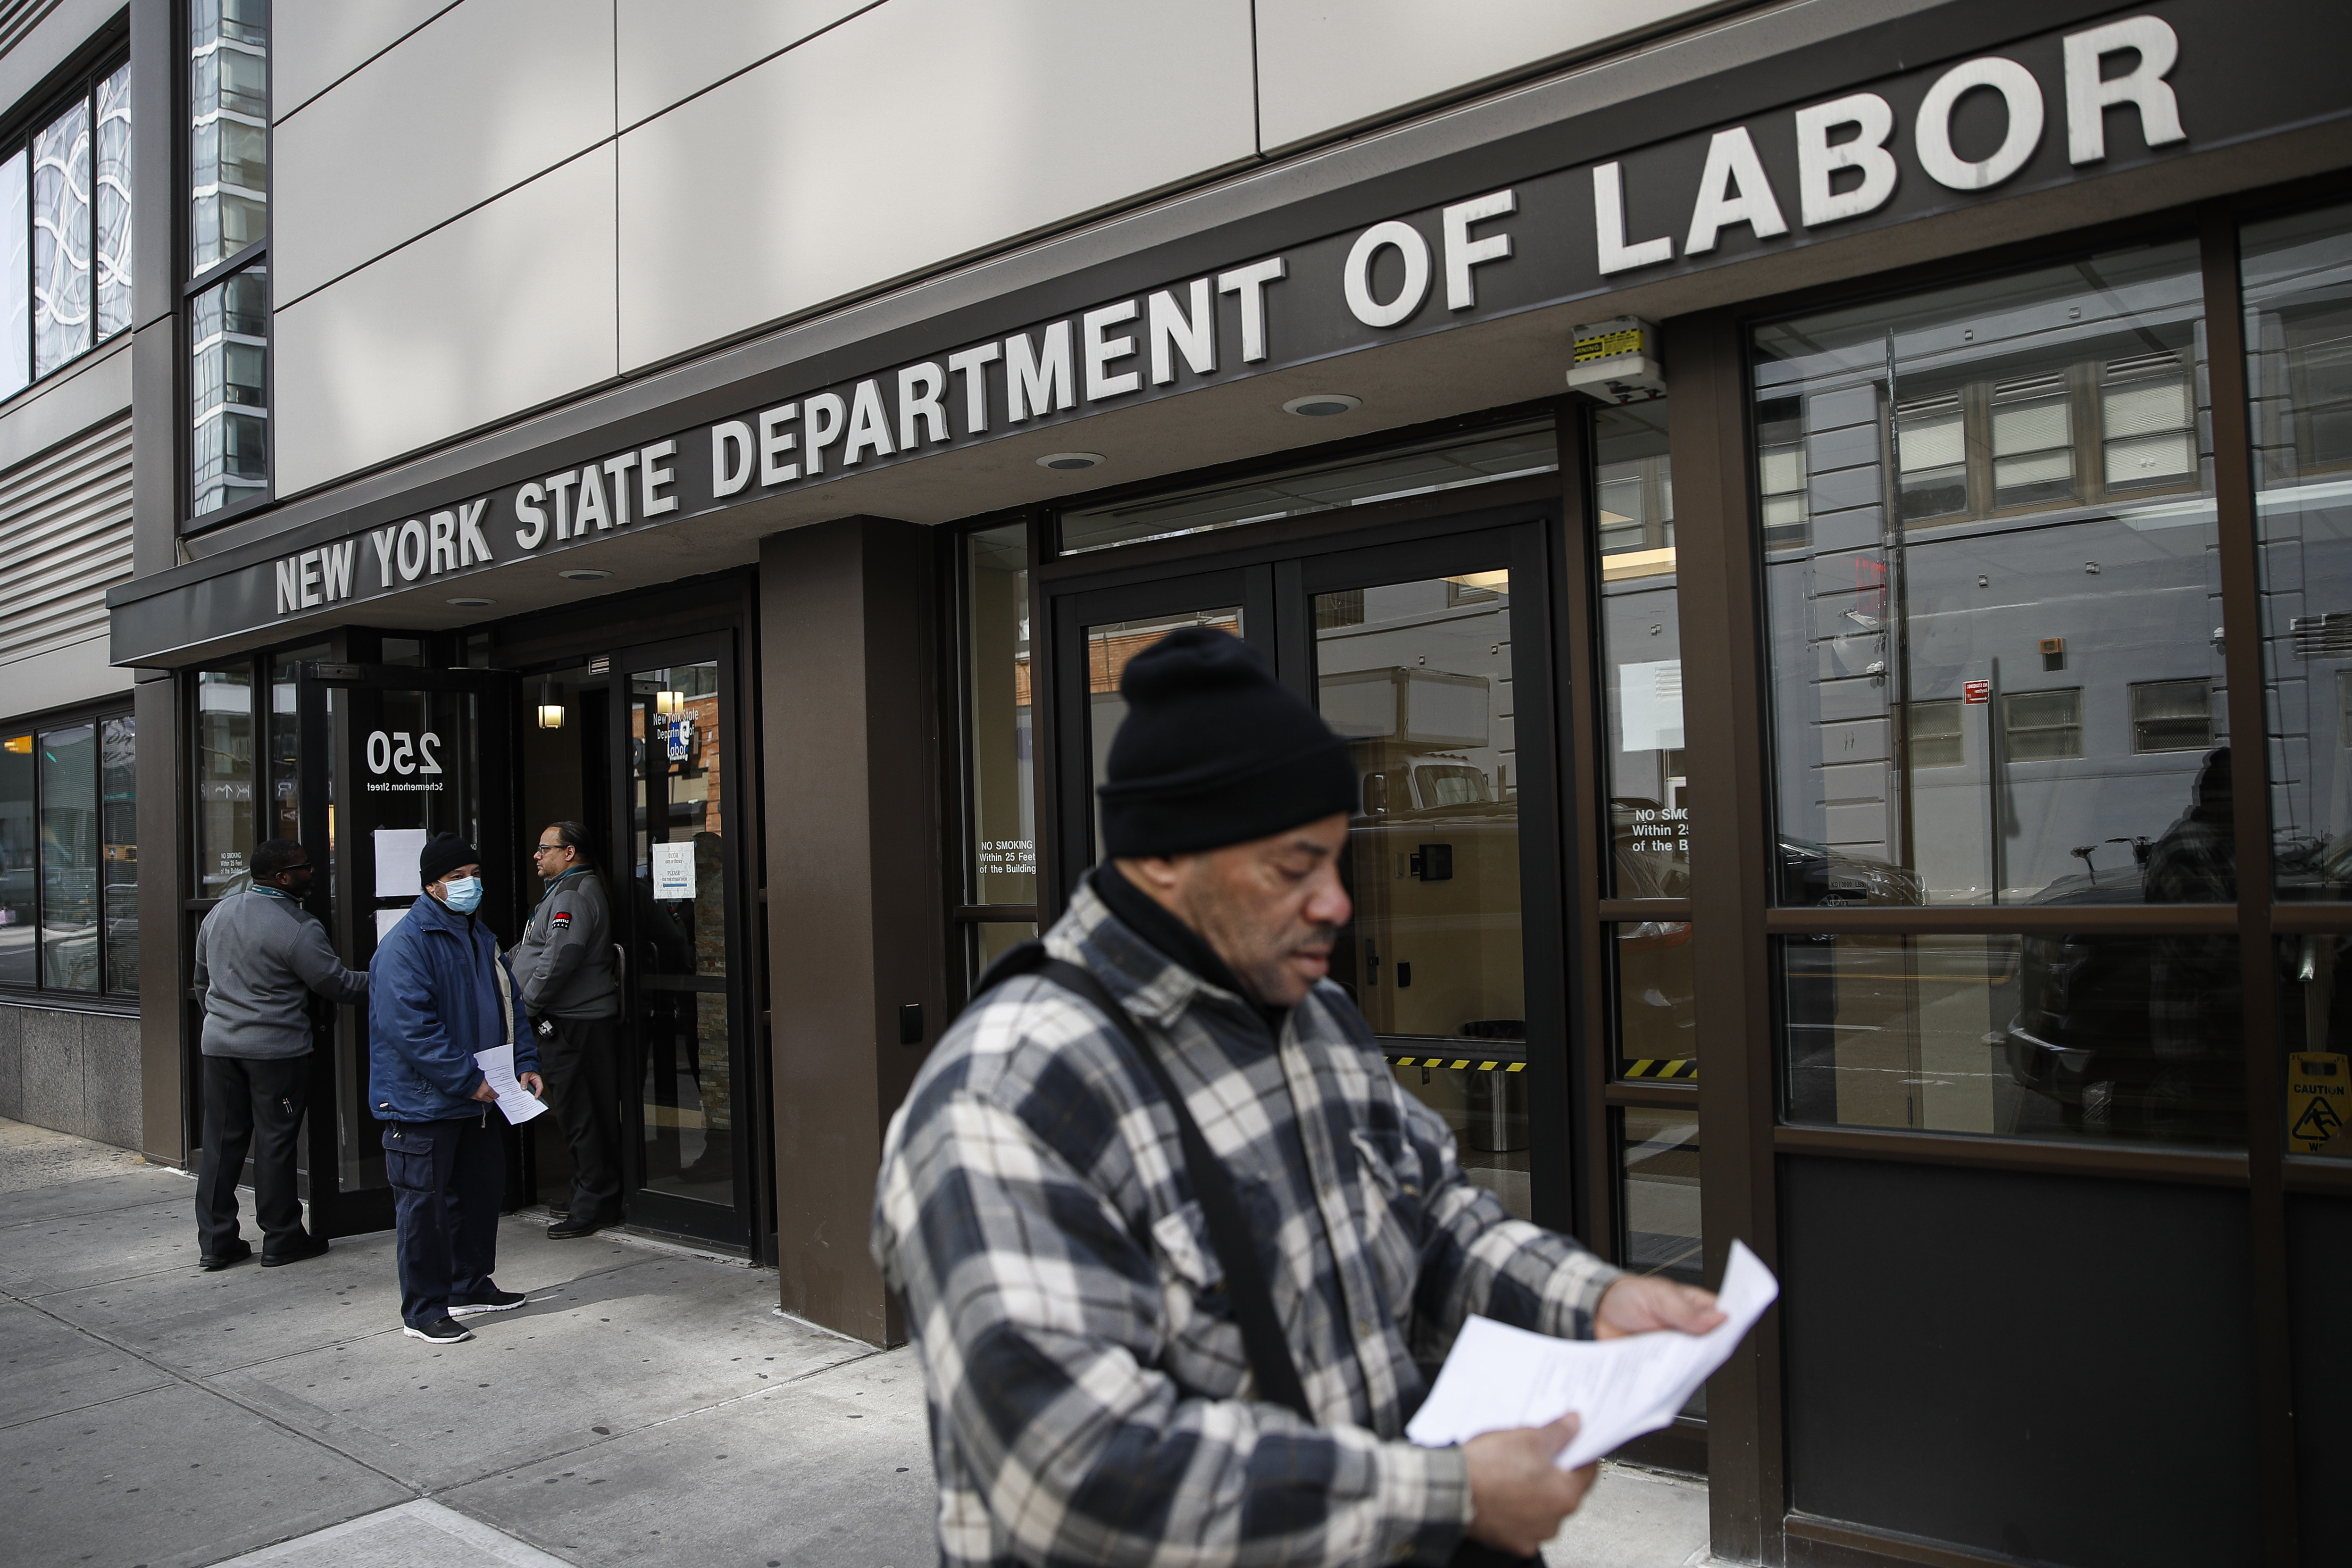 Visitors to the Department of Labor are turned away at the door by personnel due to closures over coronavirus concerns on March 18, 2020, in New York.